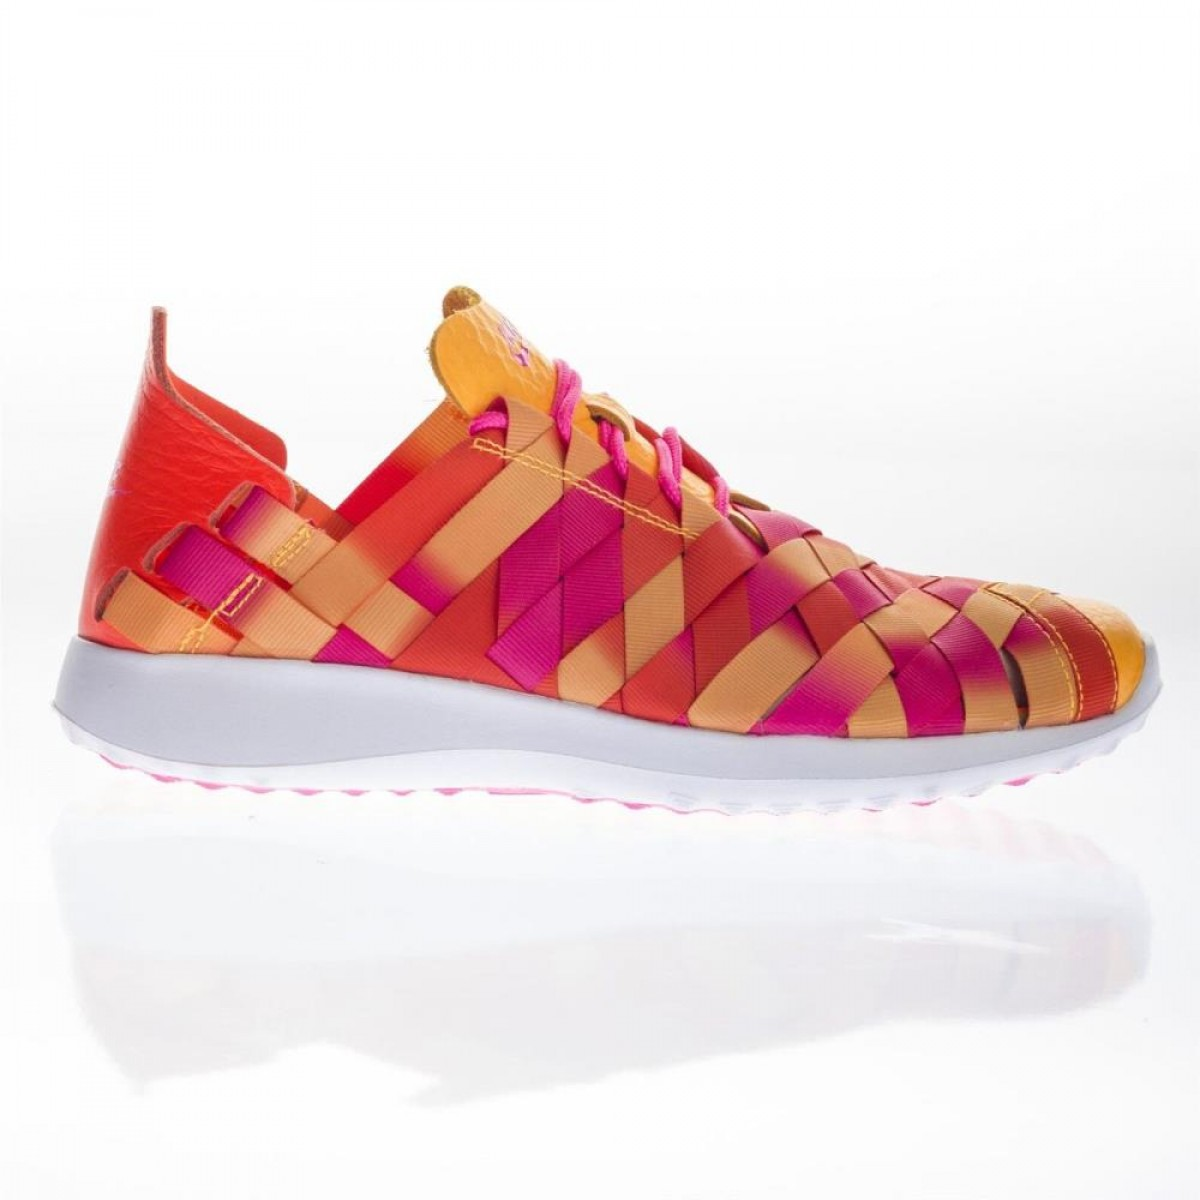 reputable site 669fa 253f3 Nike Women s Juvenate Woven Low Top Trainers